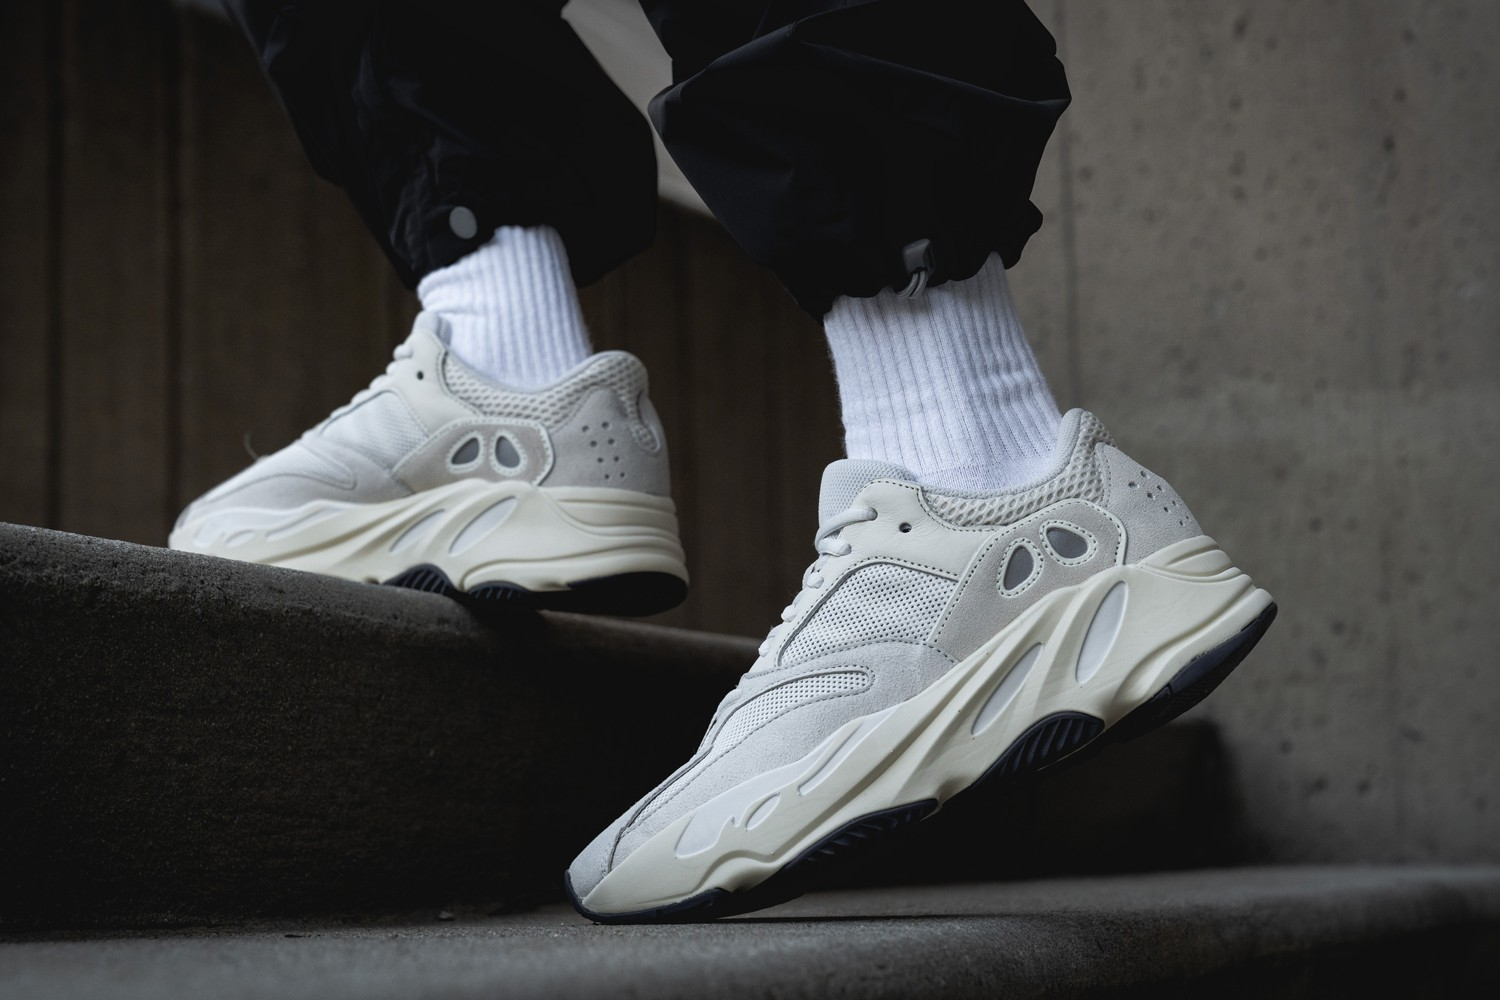 finest selection 0b8b4 9c387 This week, adidas Originals is releasing the Analog colorway of the YEEZY  BOOST 700. The Kanye West designed silhouette is dressed in a neutral  balance of ...